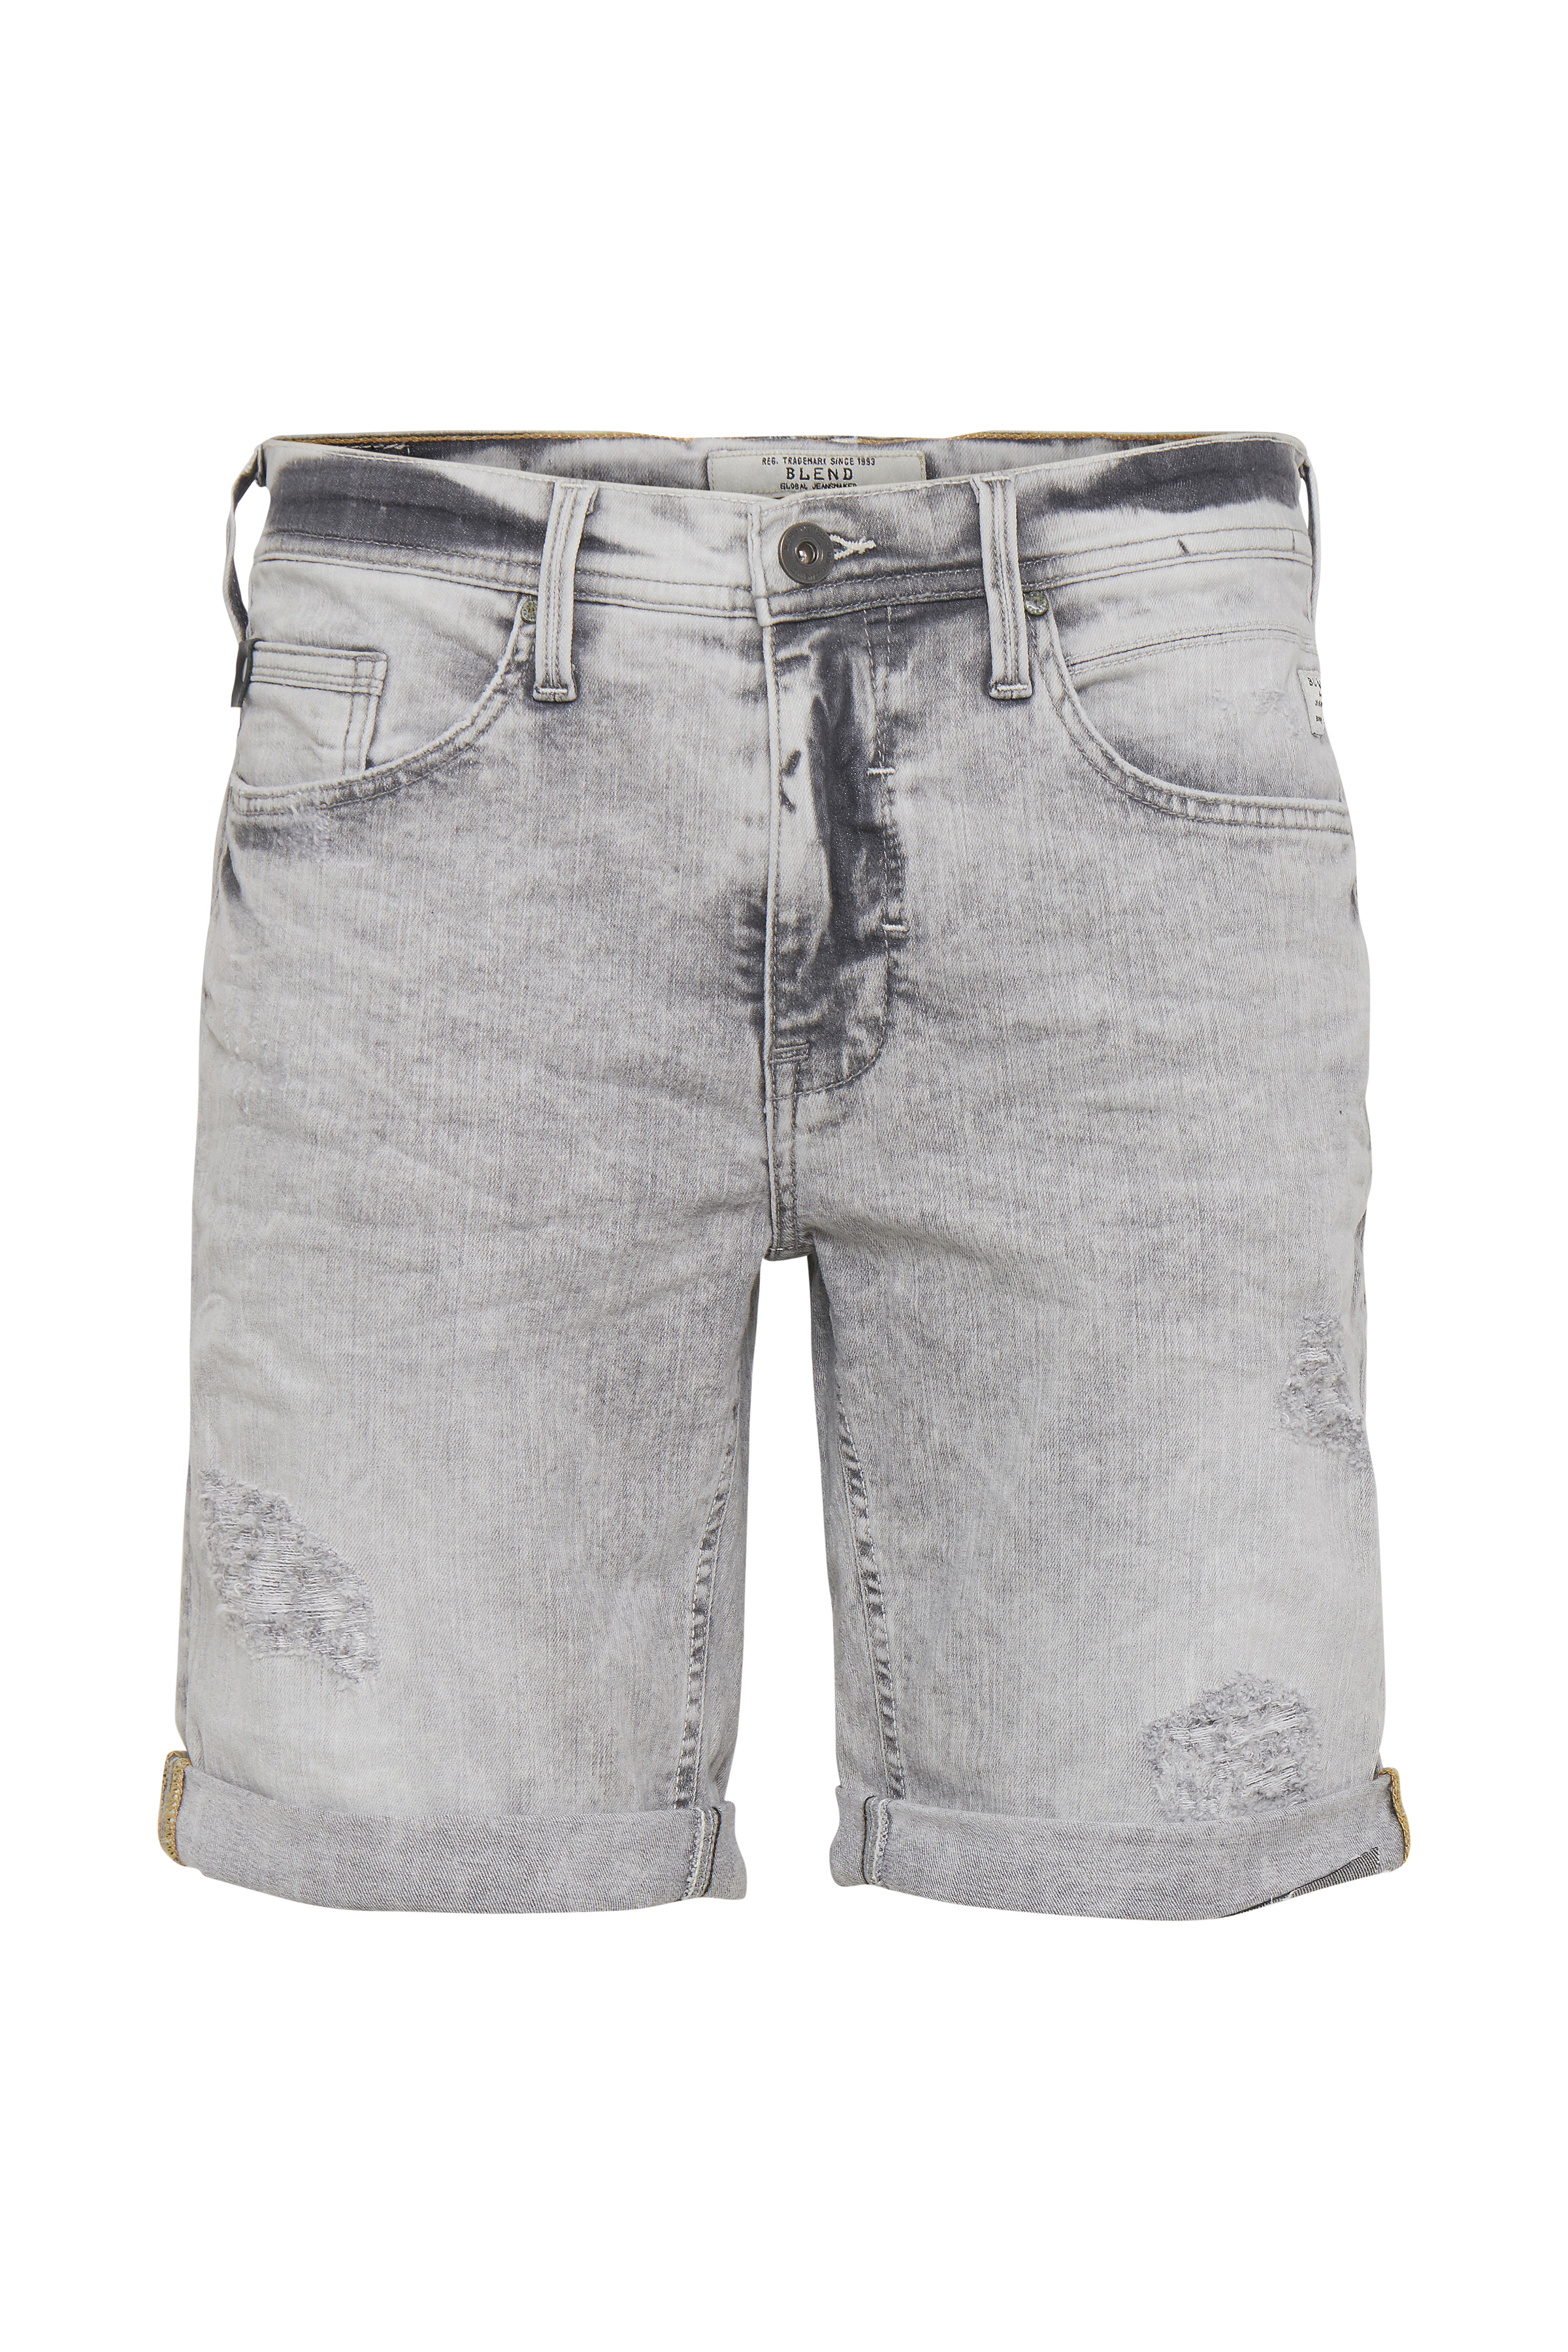 Denim light grey